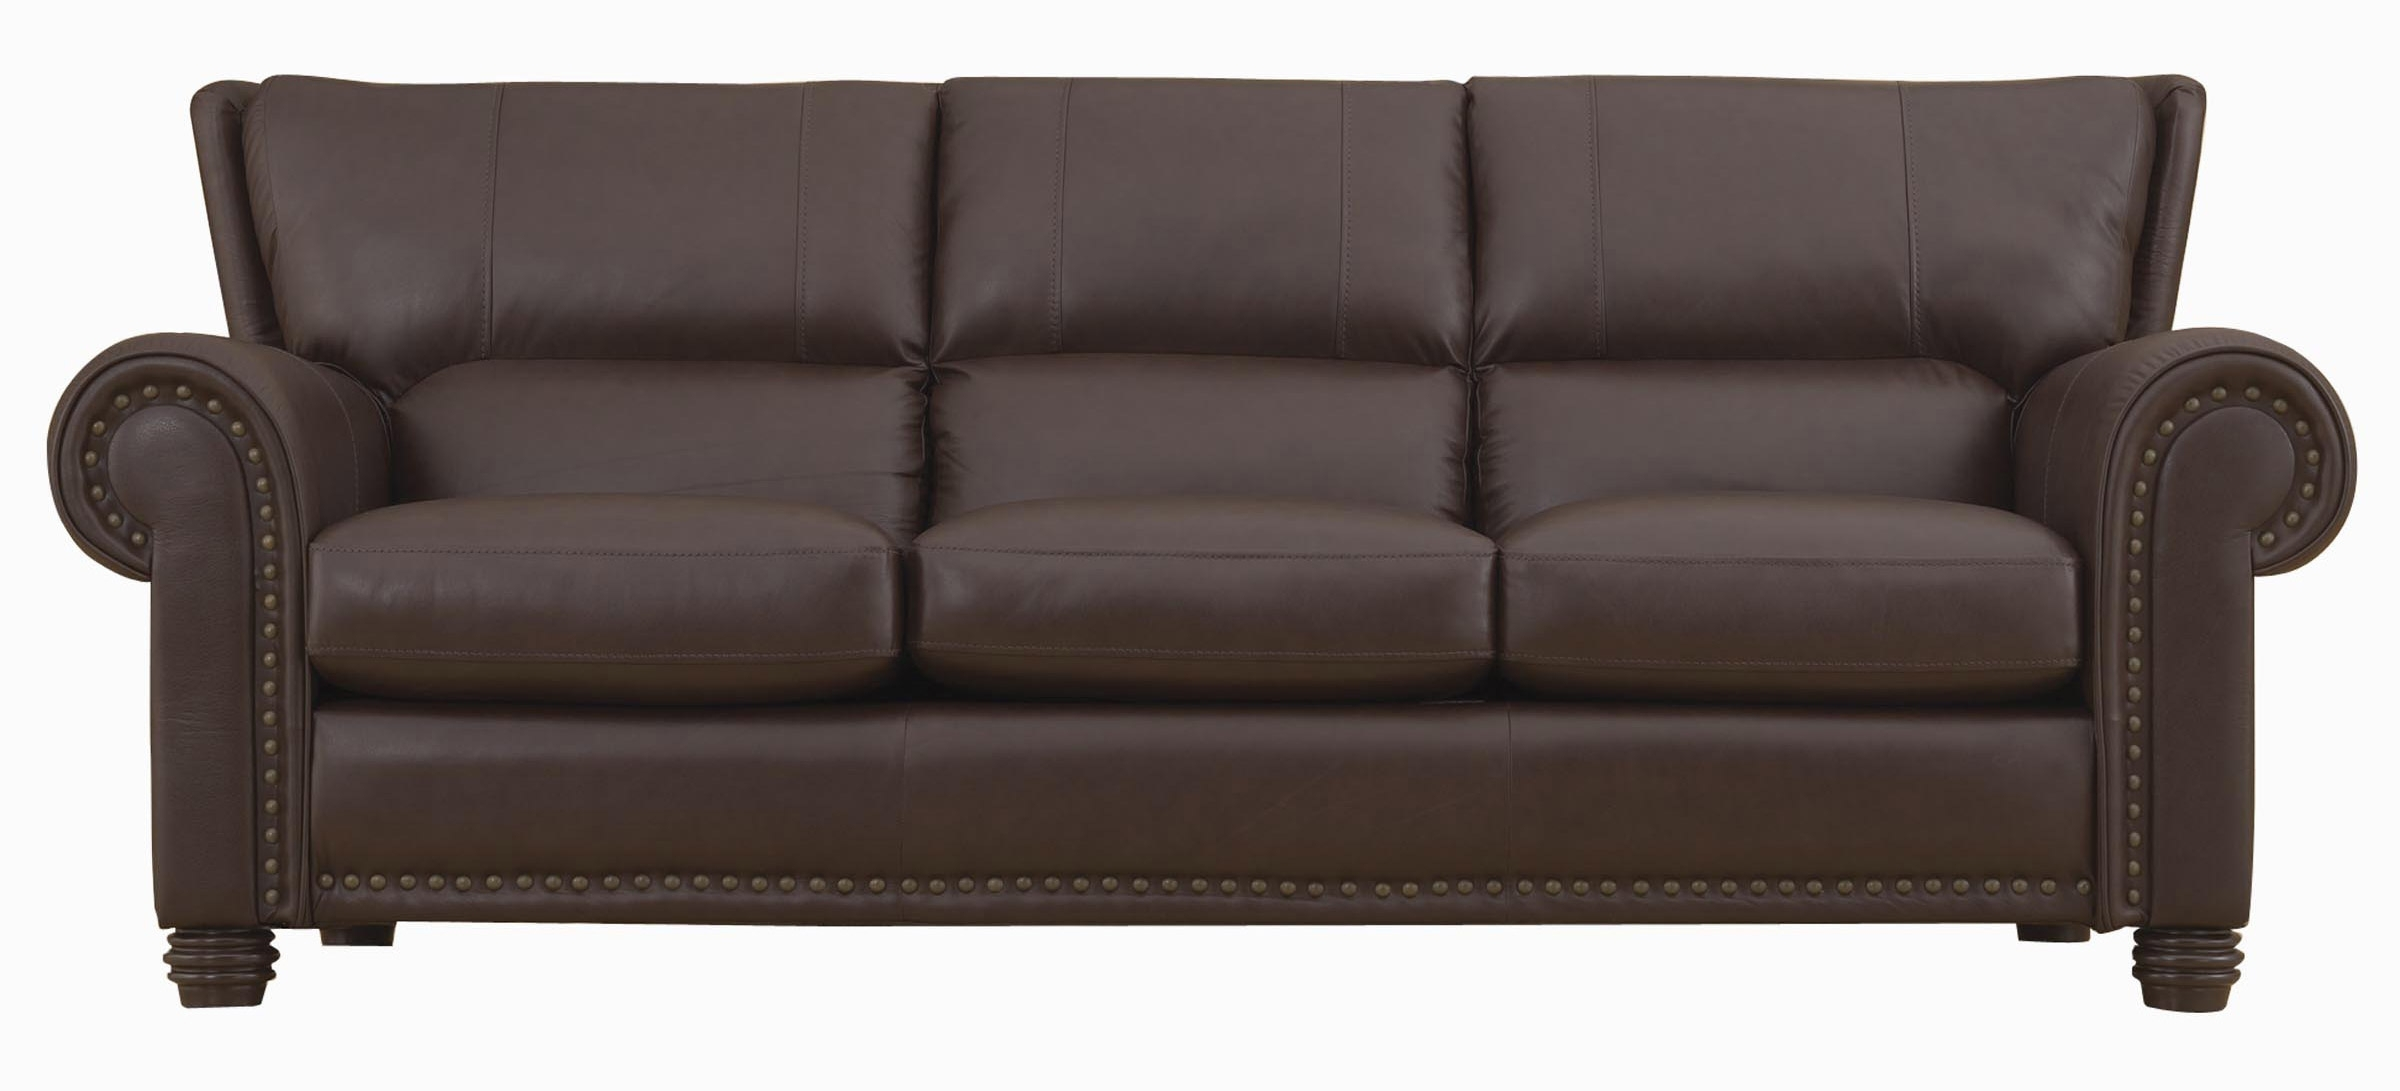 Sofa Windsor – Traditional Style – Jaymar Collection With Favorite Windsor Sofas (View 7 of 15)